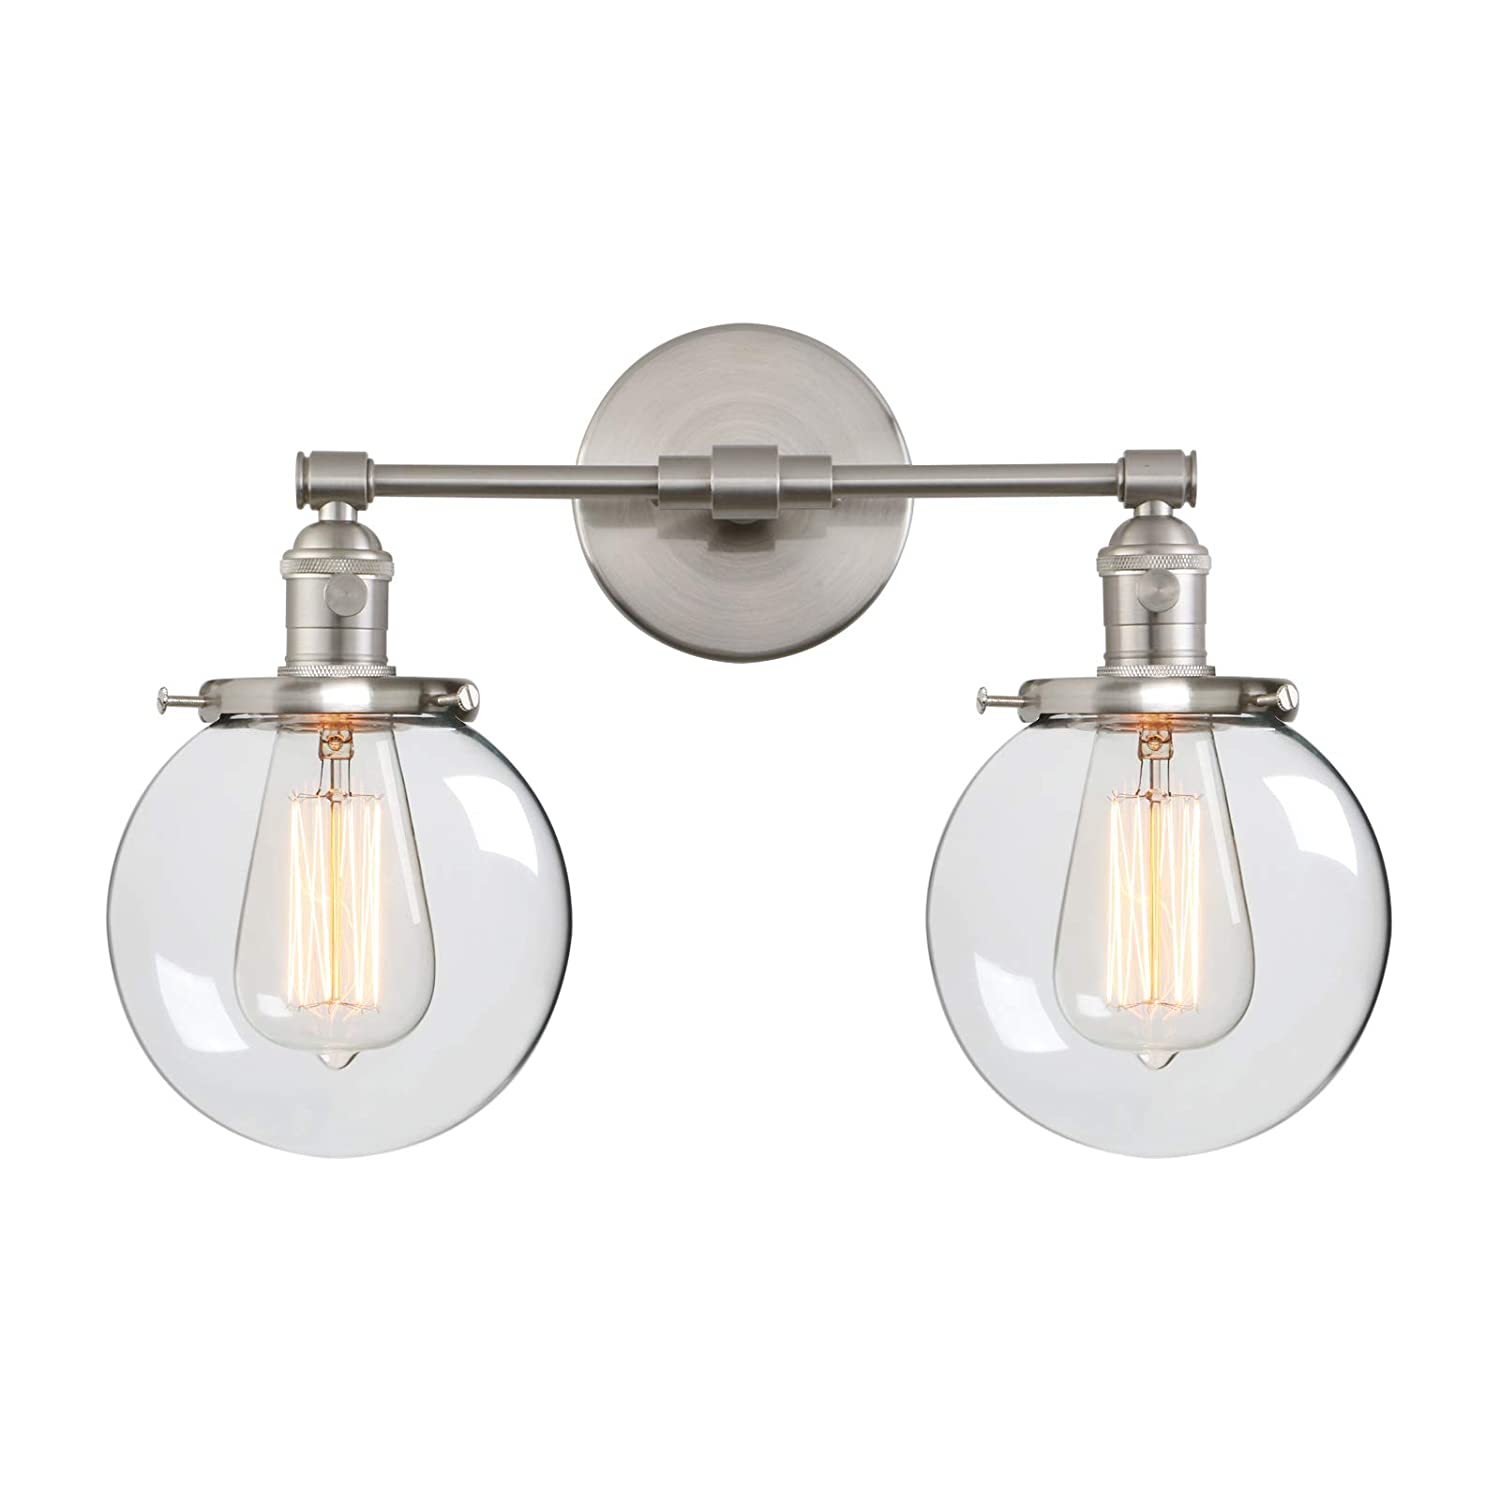 Phansthy vintage wall light fixtures with globe glass shade 2 lights wall sconces lighting switched indoor rustic wall lamps for living room bathroom vanity